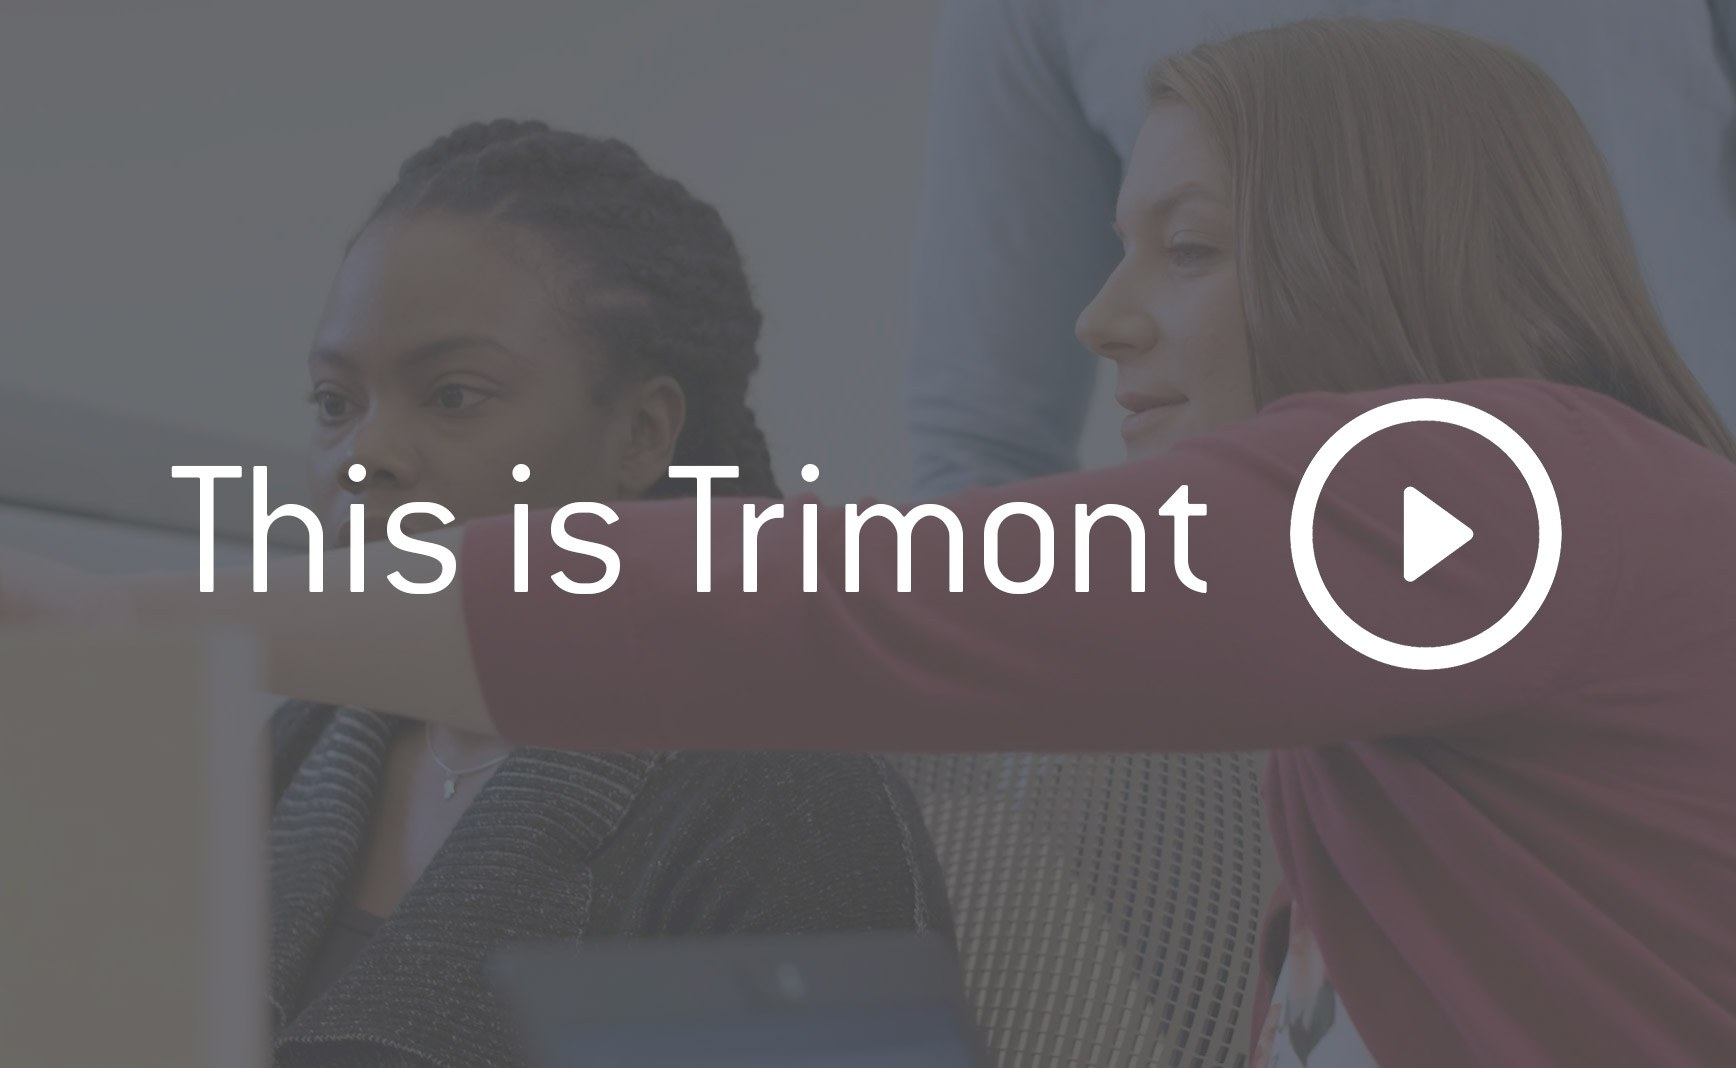 Play video: This is Trimont